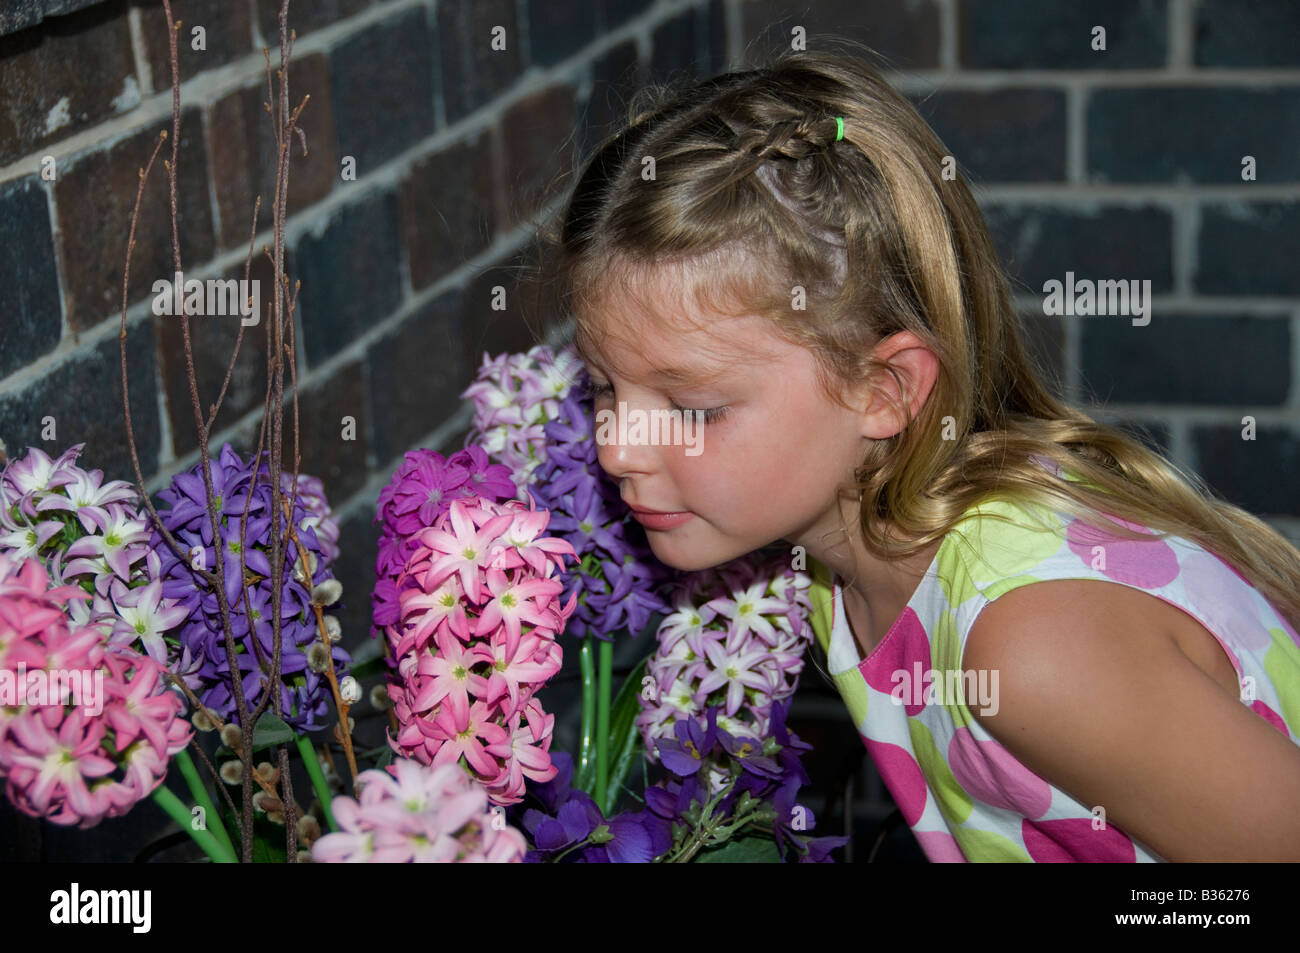 A young caucasian girl, age 5 years, leans over to smell purple and pink Hyacinth blooms. USA. - Stock Image